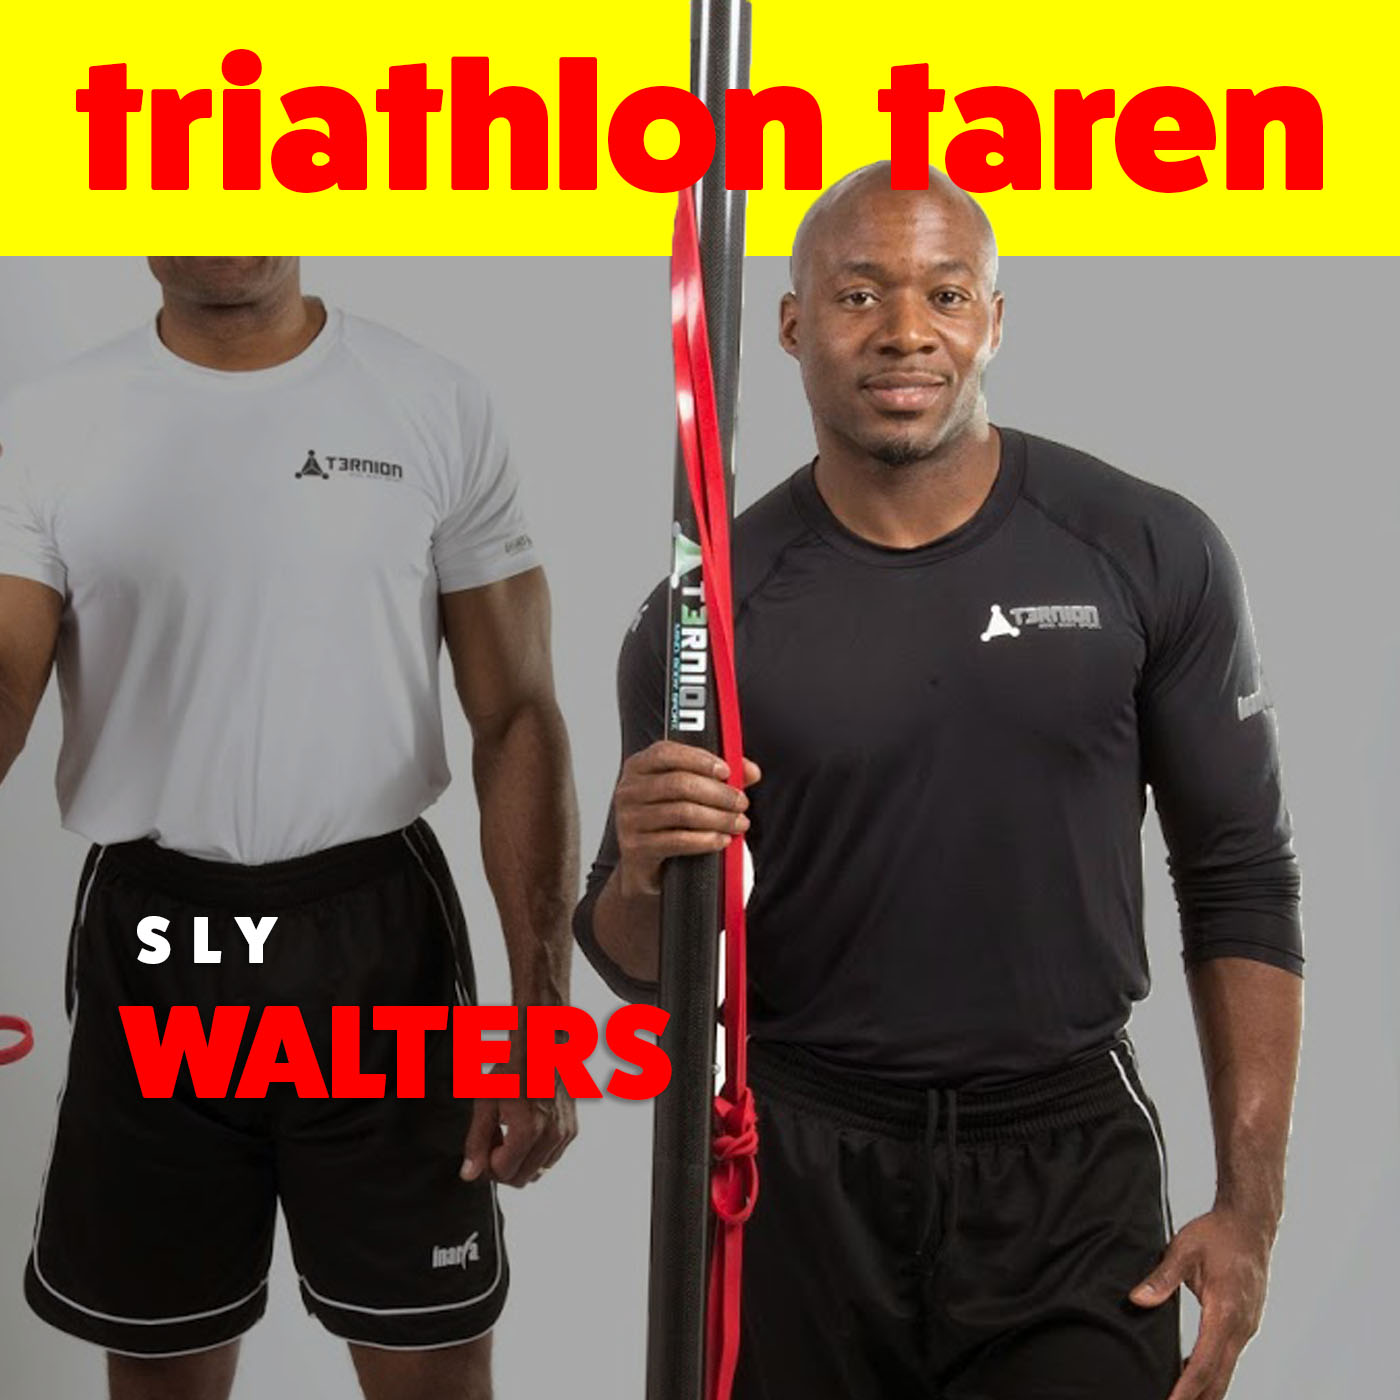 Busting through low motivation with Sly Walters